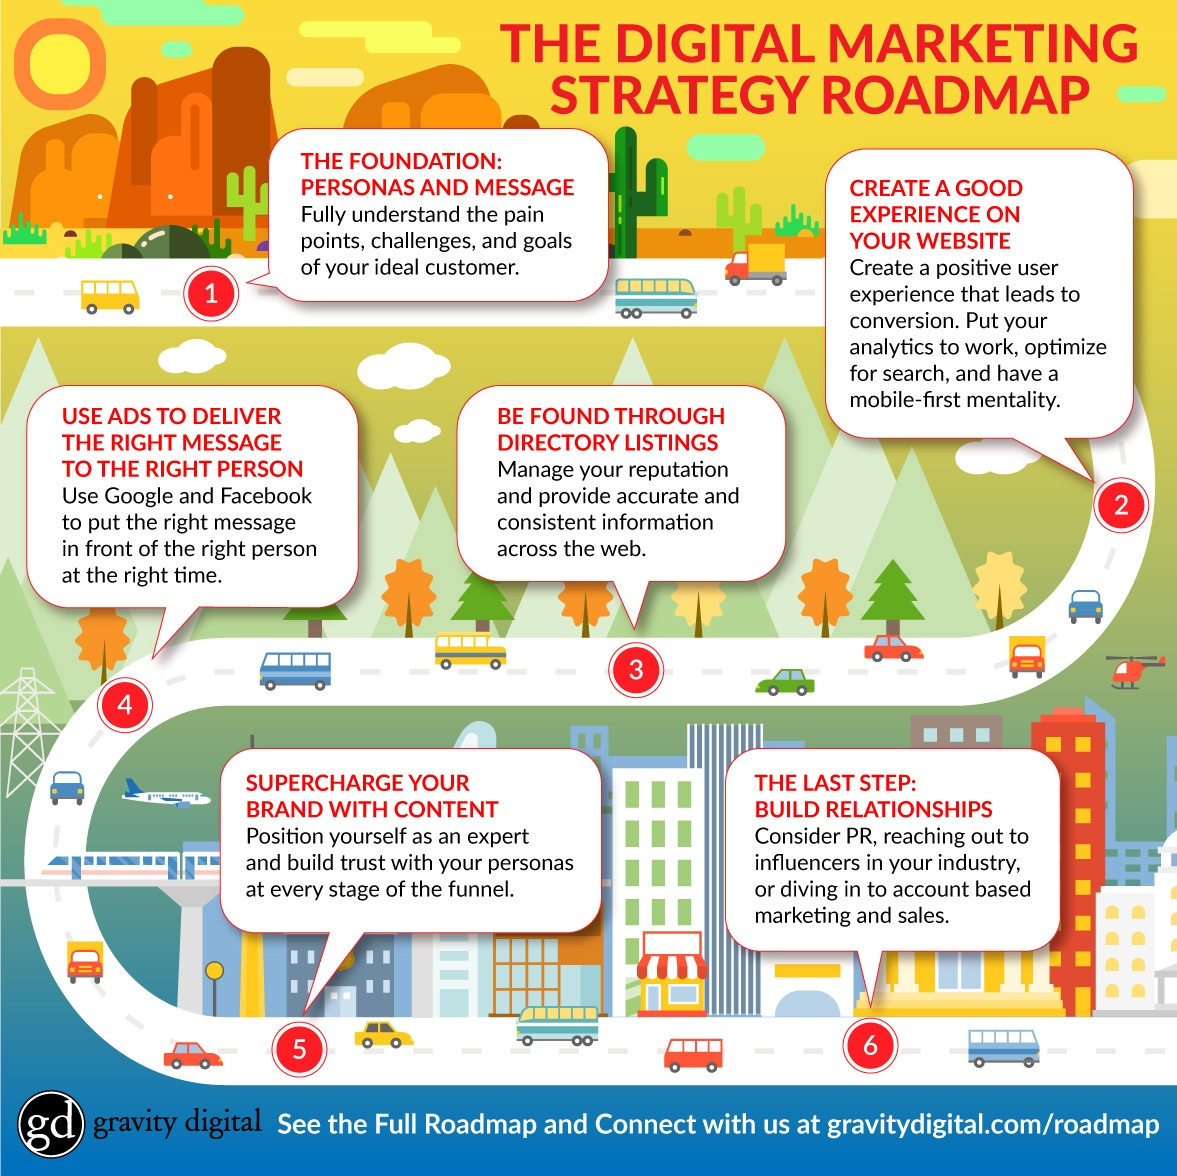 The Roadmap: How To Start And Plan A Digital Marketing